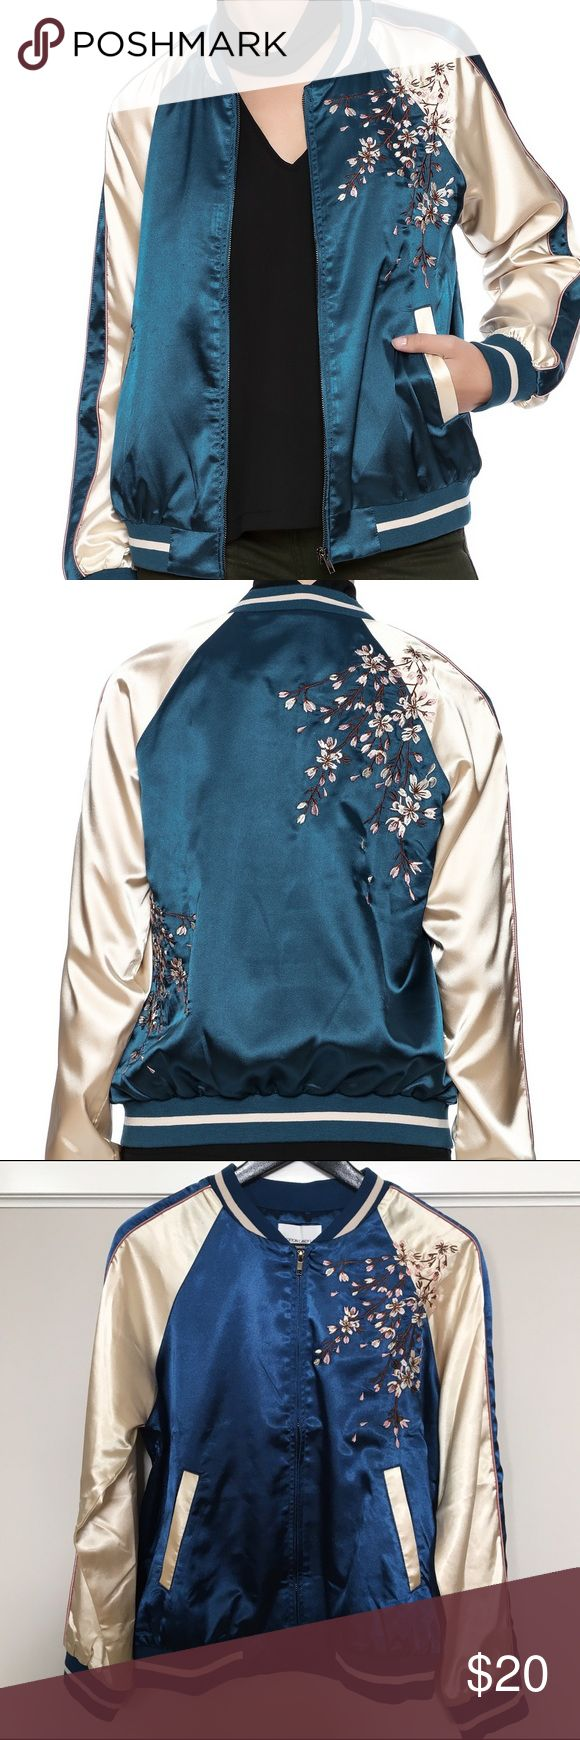 Cotton Candy LA Geisha Bomber Jacket Small Satin bomber jacket with cherry blossom embroidery. Soft pink lining. 97% Polyester, 3% Spandex. Never worn! Bloomingdale's Jackets & Coats